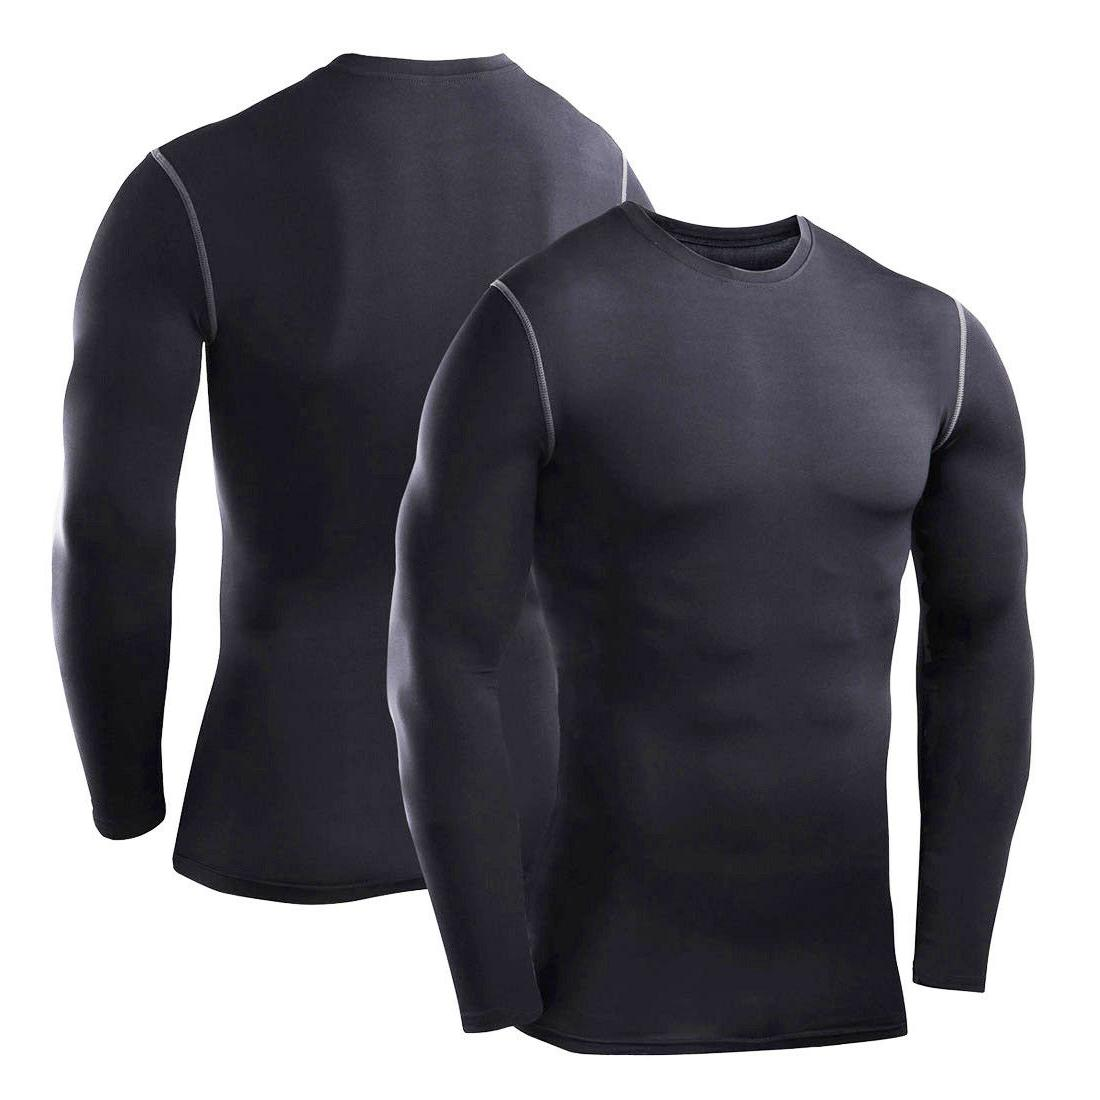 Mens Long Sleeve Workout Sportswear